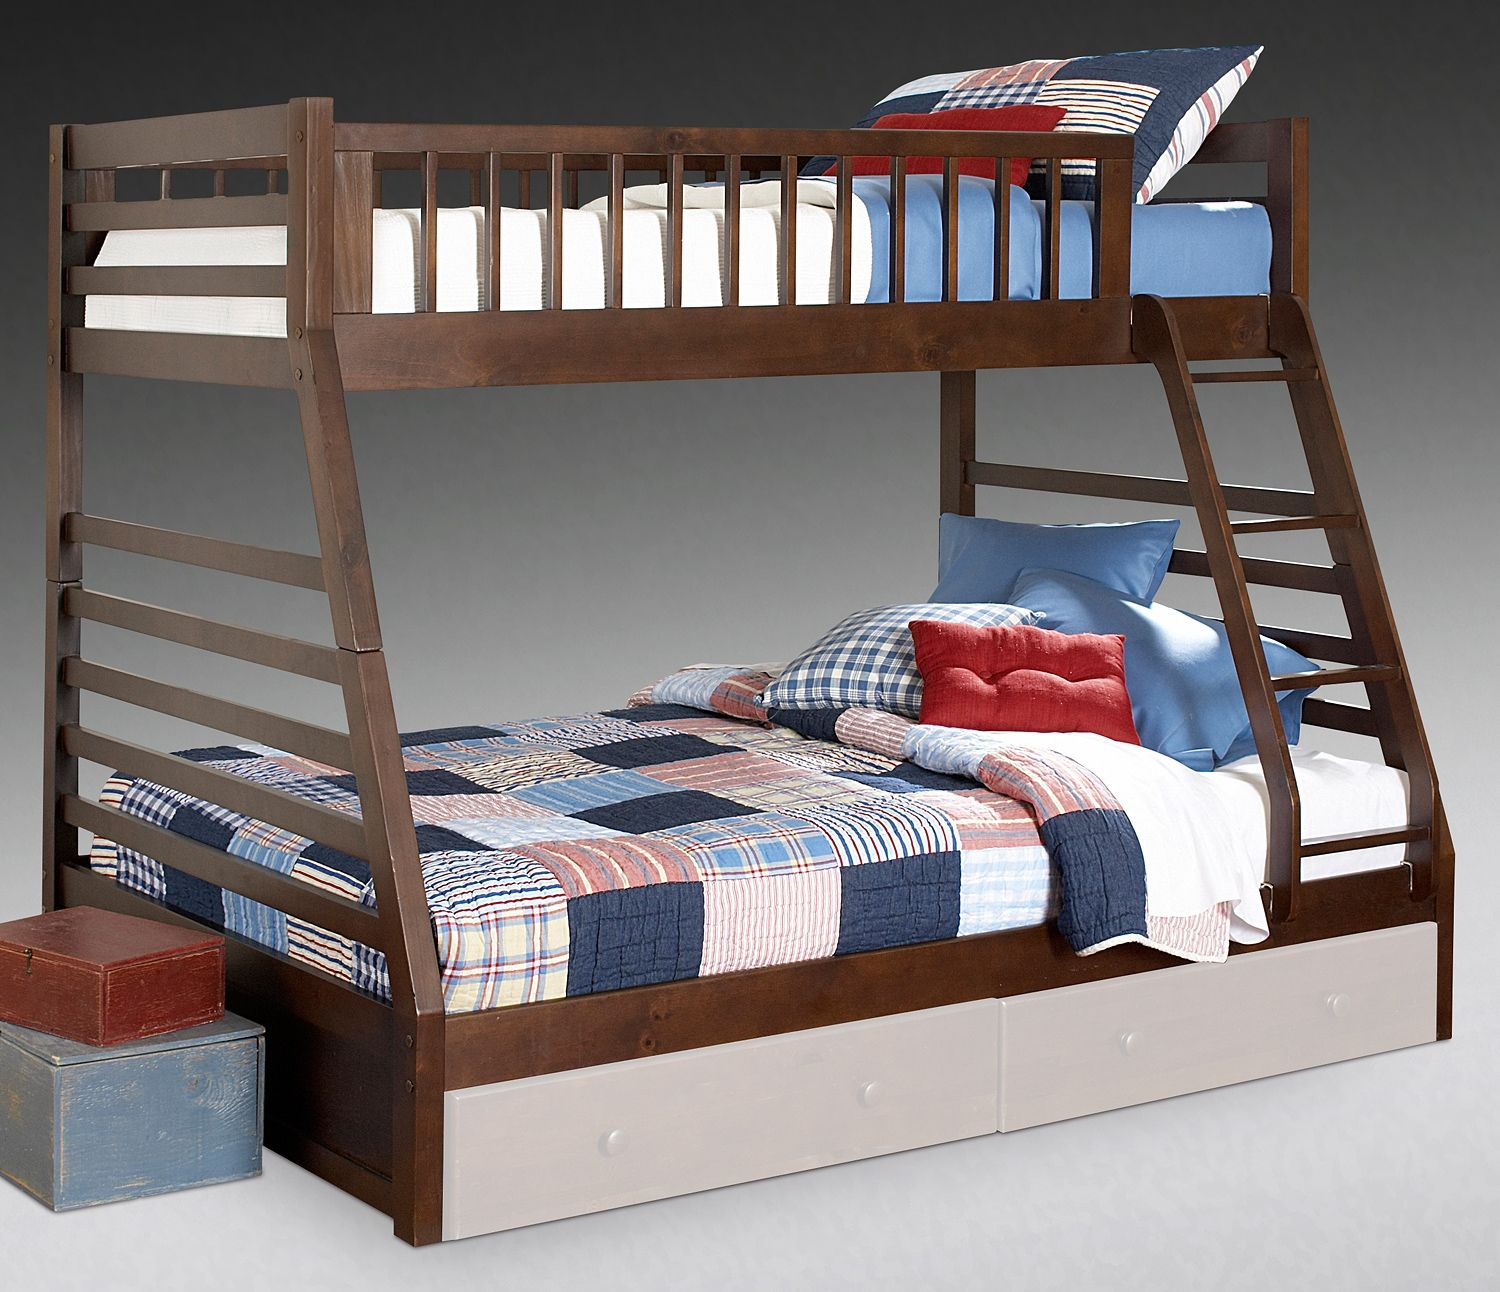 Assembly Instructions Of C Style Futon Bunk Bed Bunk Beds